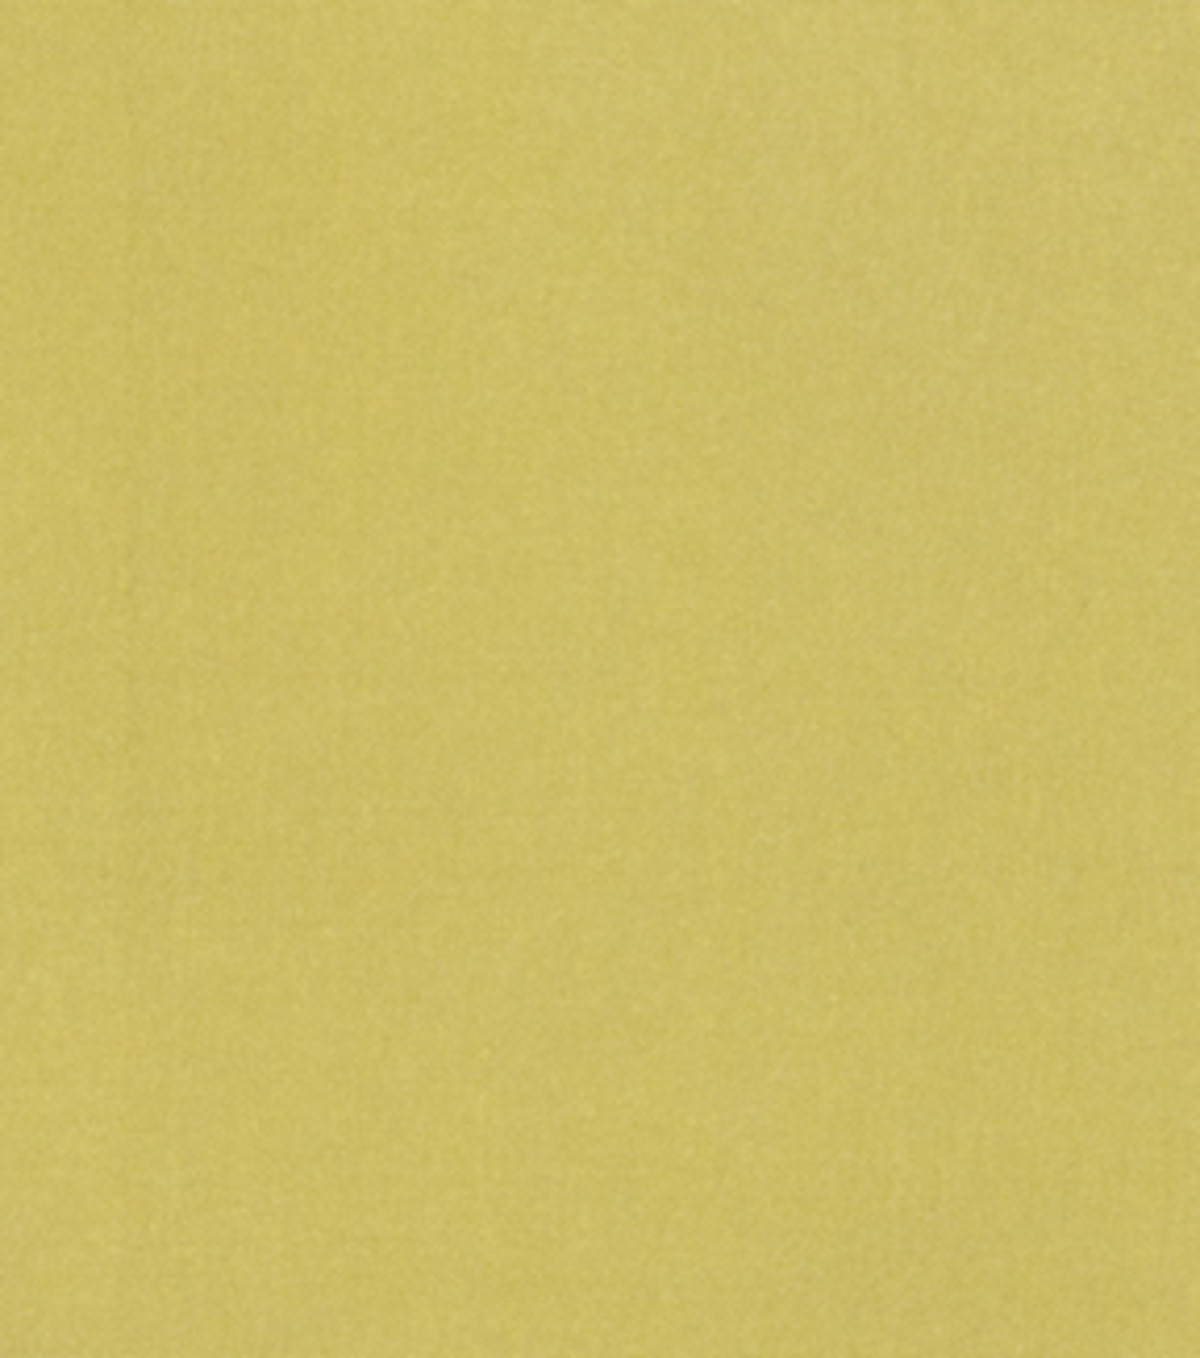 Home Decor 8\u0022x8\u0022 Fabric Swatch-Signature Series Ultra Taffeta Greengage